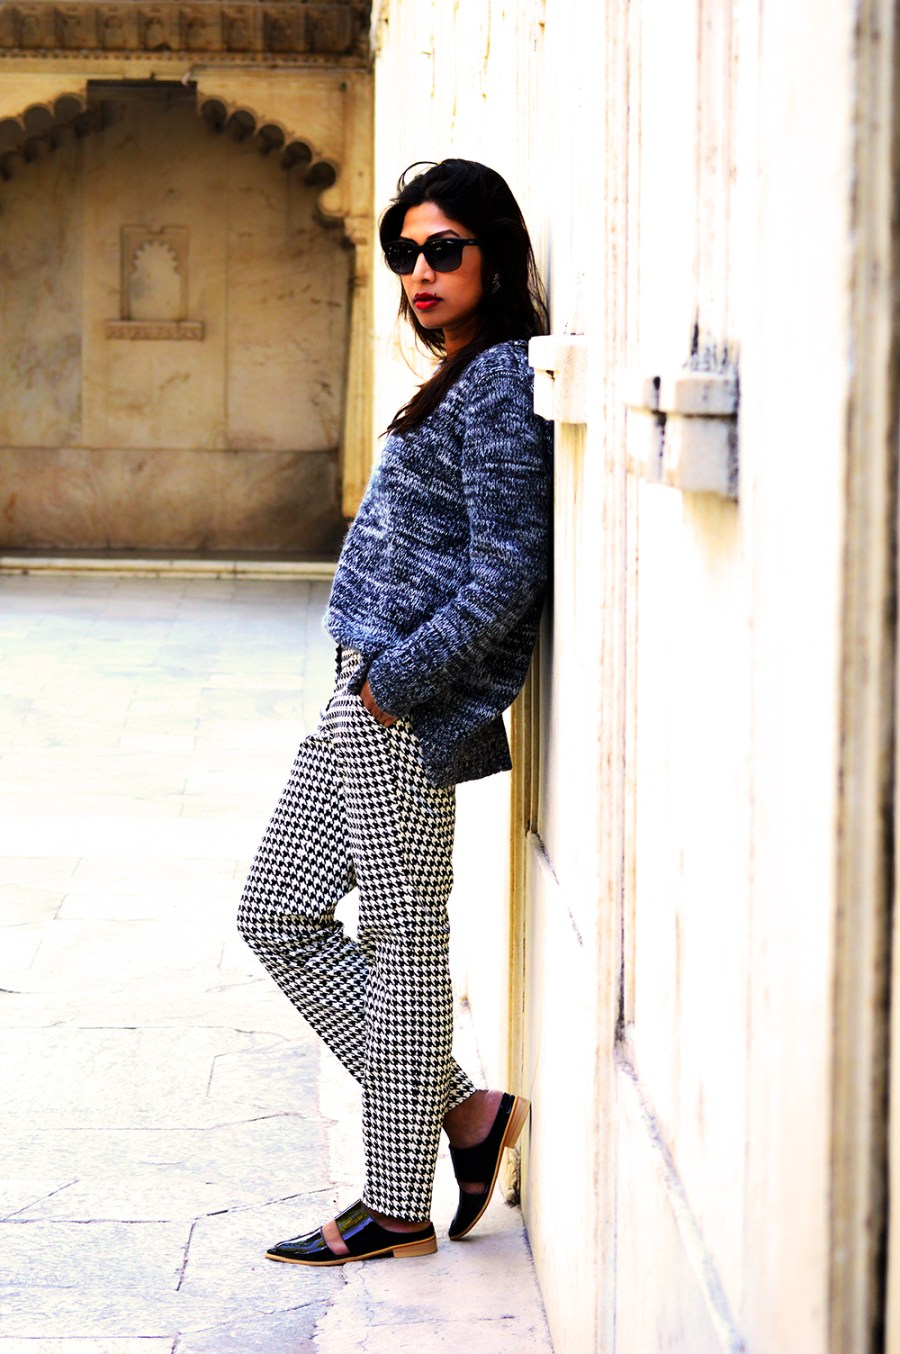 Fashion, Style, Indian Fashion Blog, OOTD, Street Style, Fashion Blogger, Fashion Photography, Vero Moda Printed Pants, Mango Sweater, Lara Karen Shoes, Jabong, Holiday, Travel, Top Fashion